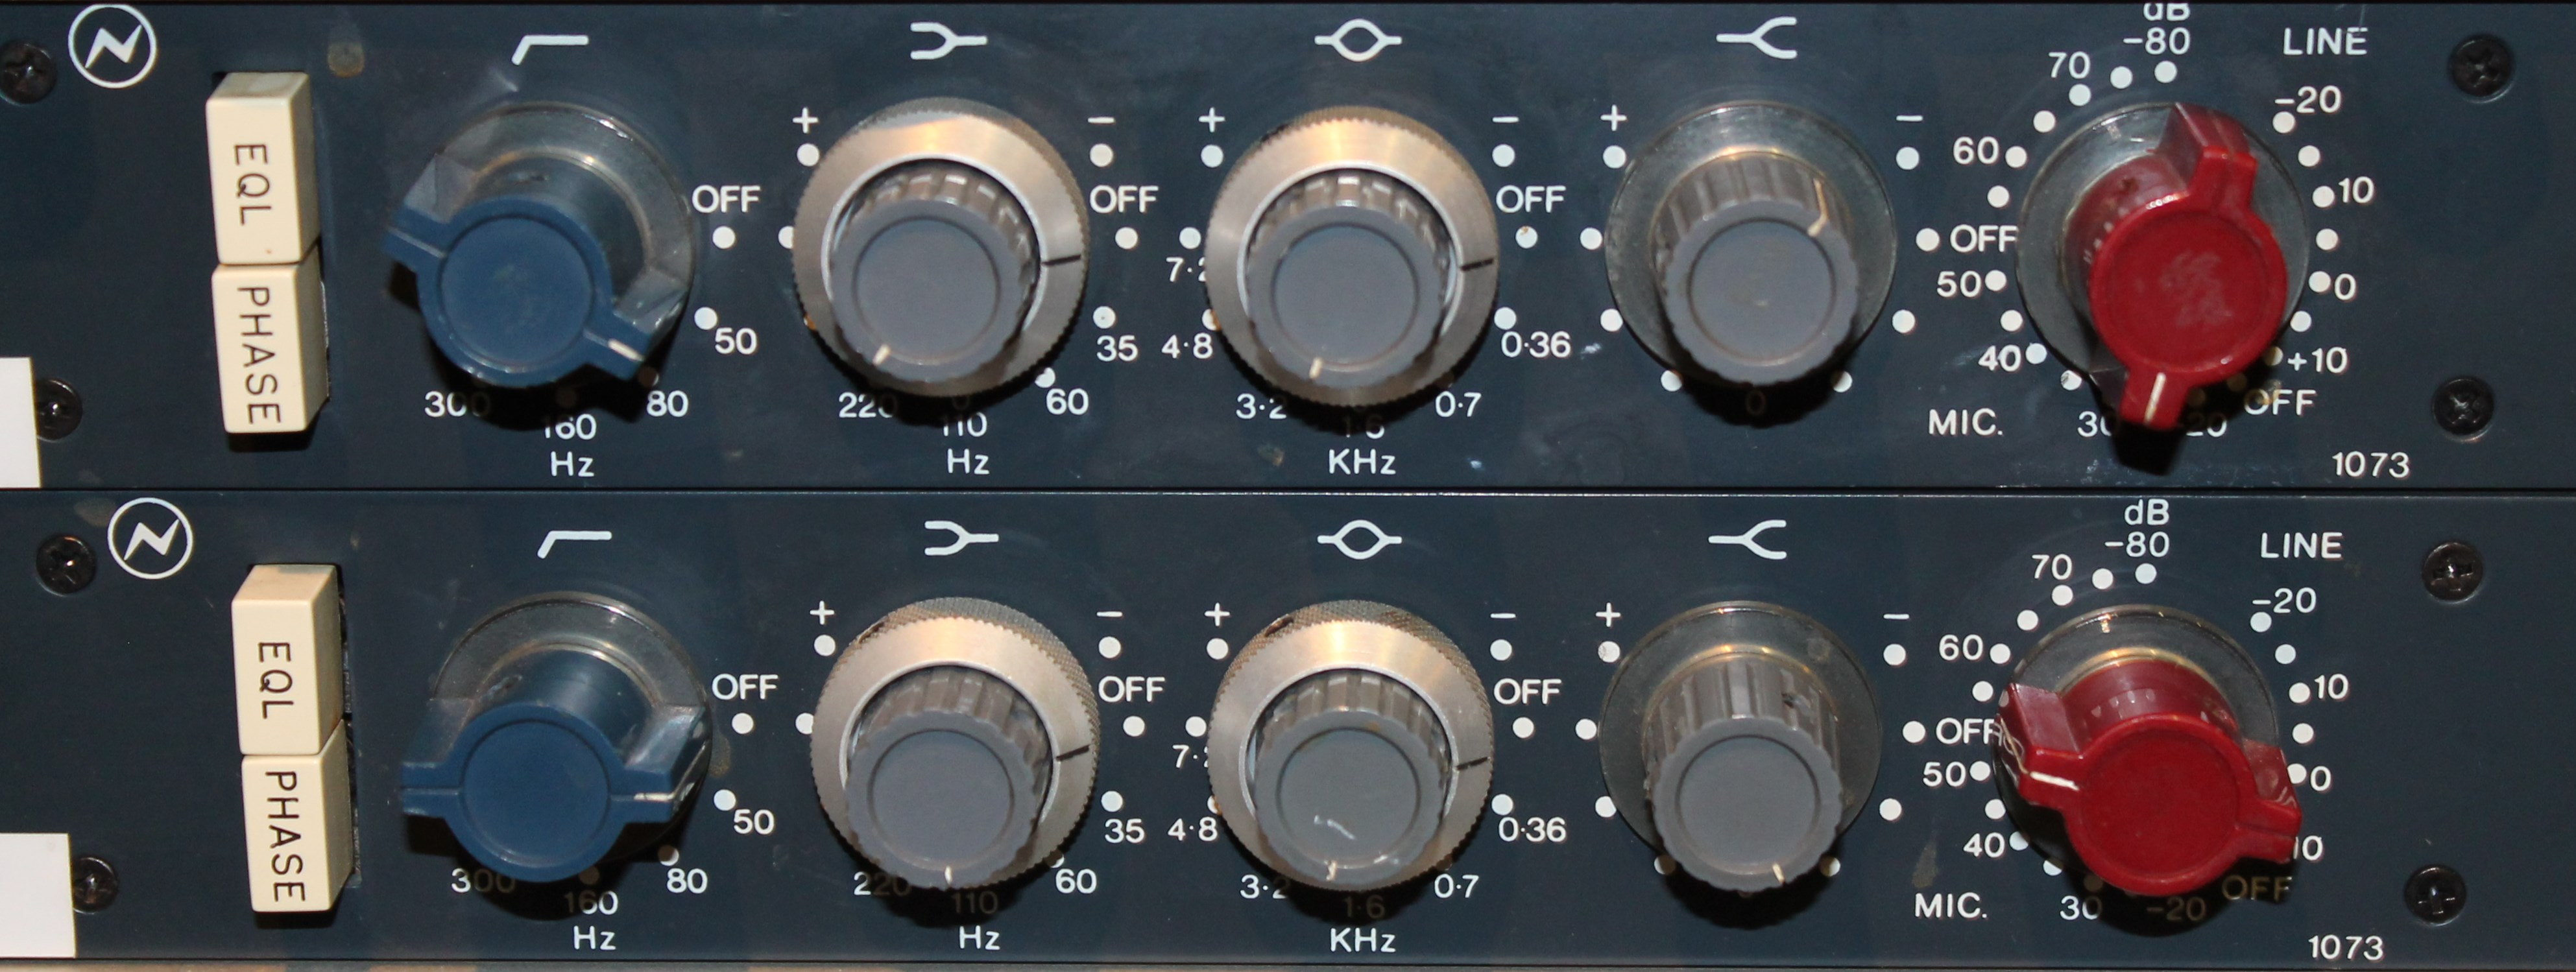 Ac Dcs Kicked In The Teeth Schaffer Replica Equalizers Crossovers Wiring Kits Caps And More Click On Picture To Authentic Neve 1073 Modules